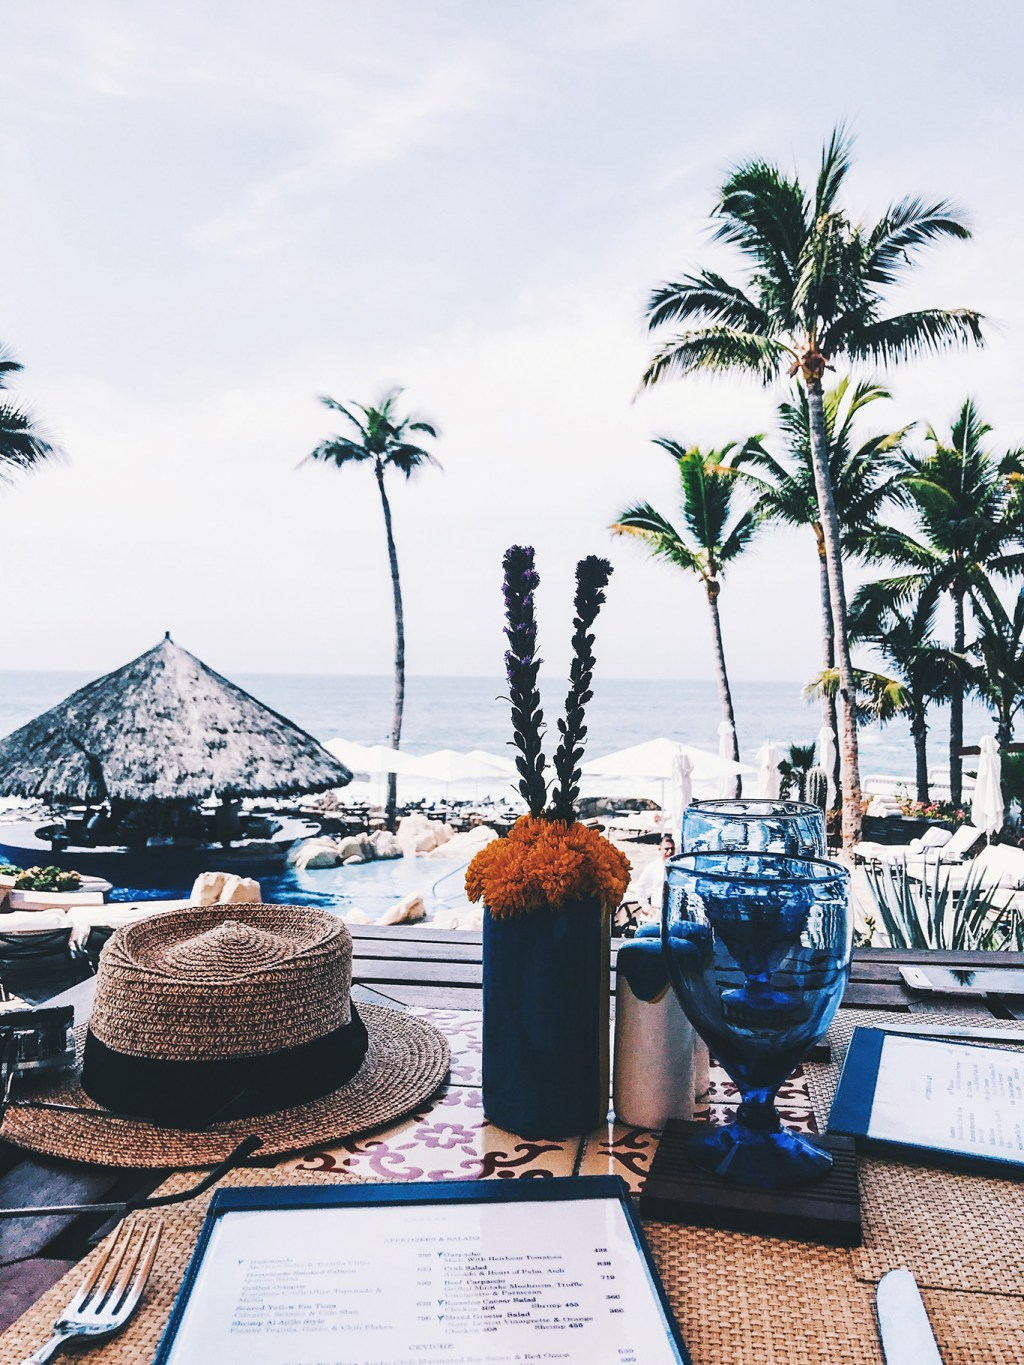 Alena Gidenko of modaprints.com shares her experience at One and only Palmilla and things to do while staying there